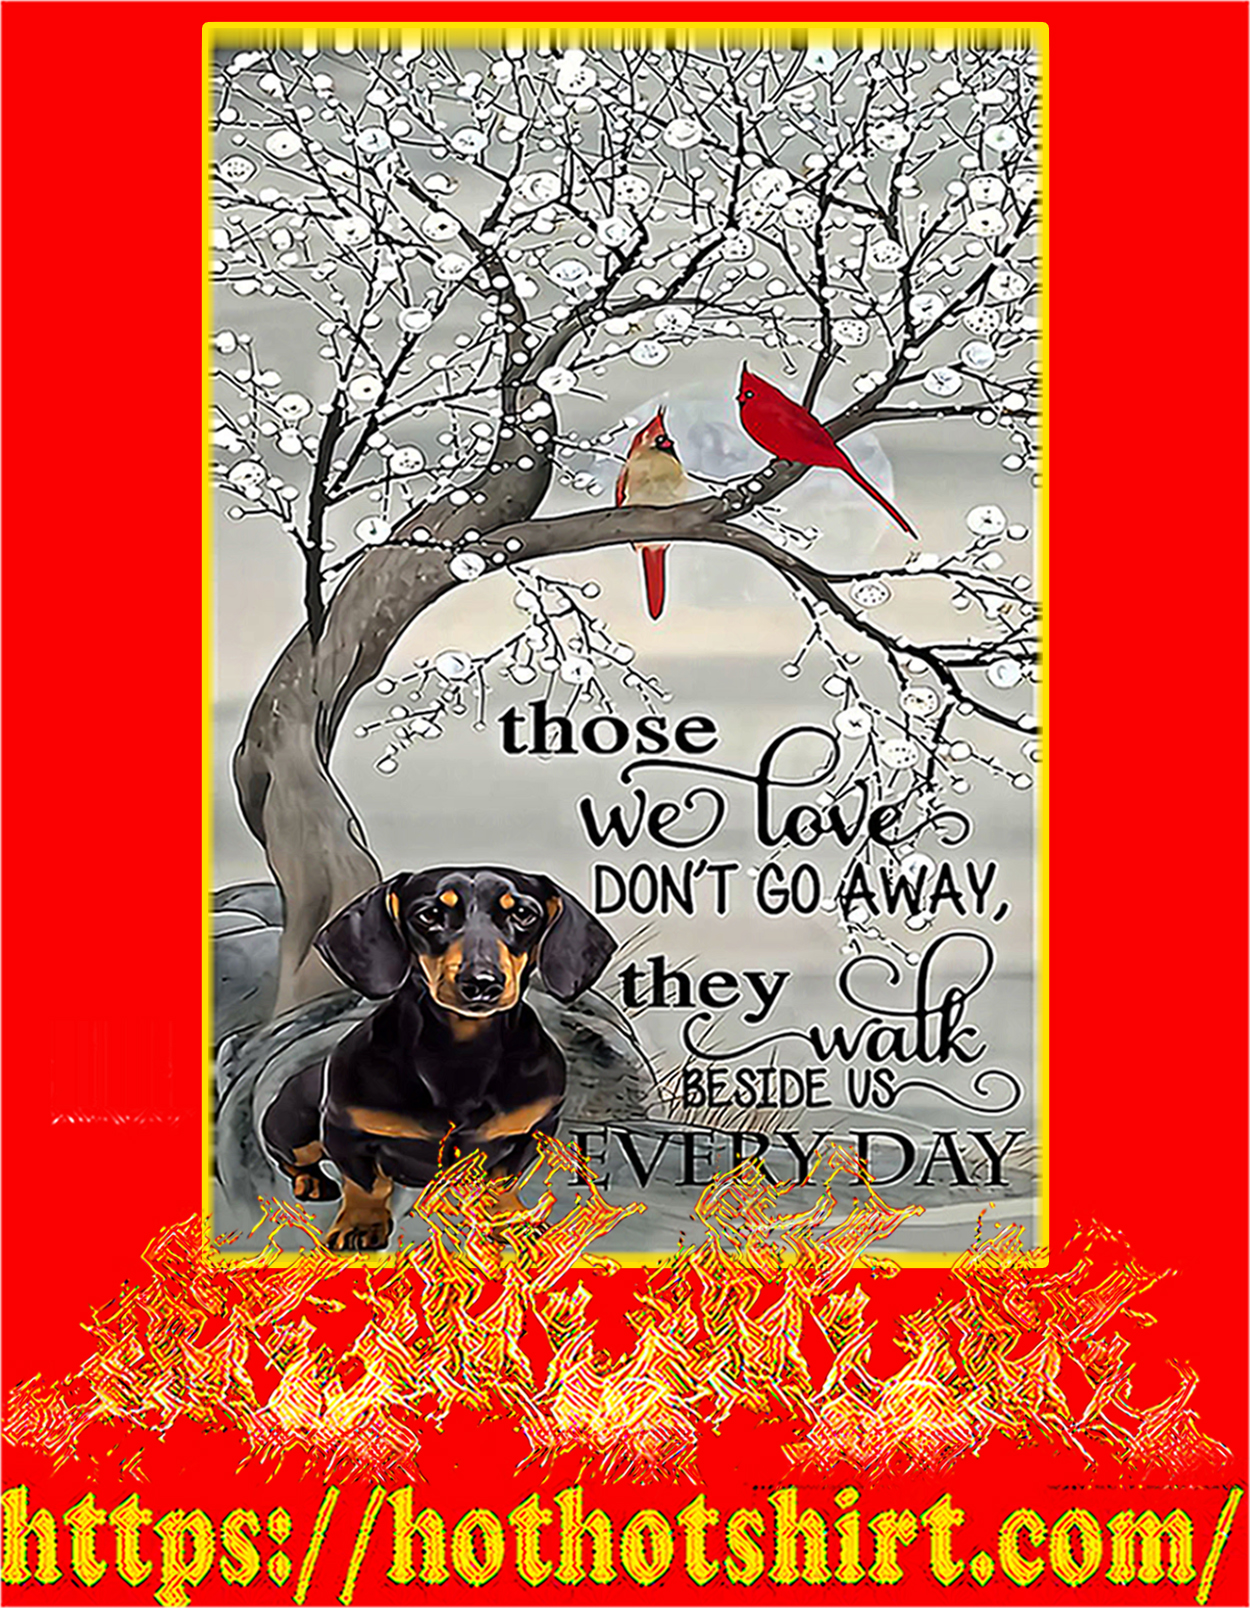 Dachshund those we love don't go away poster - A3